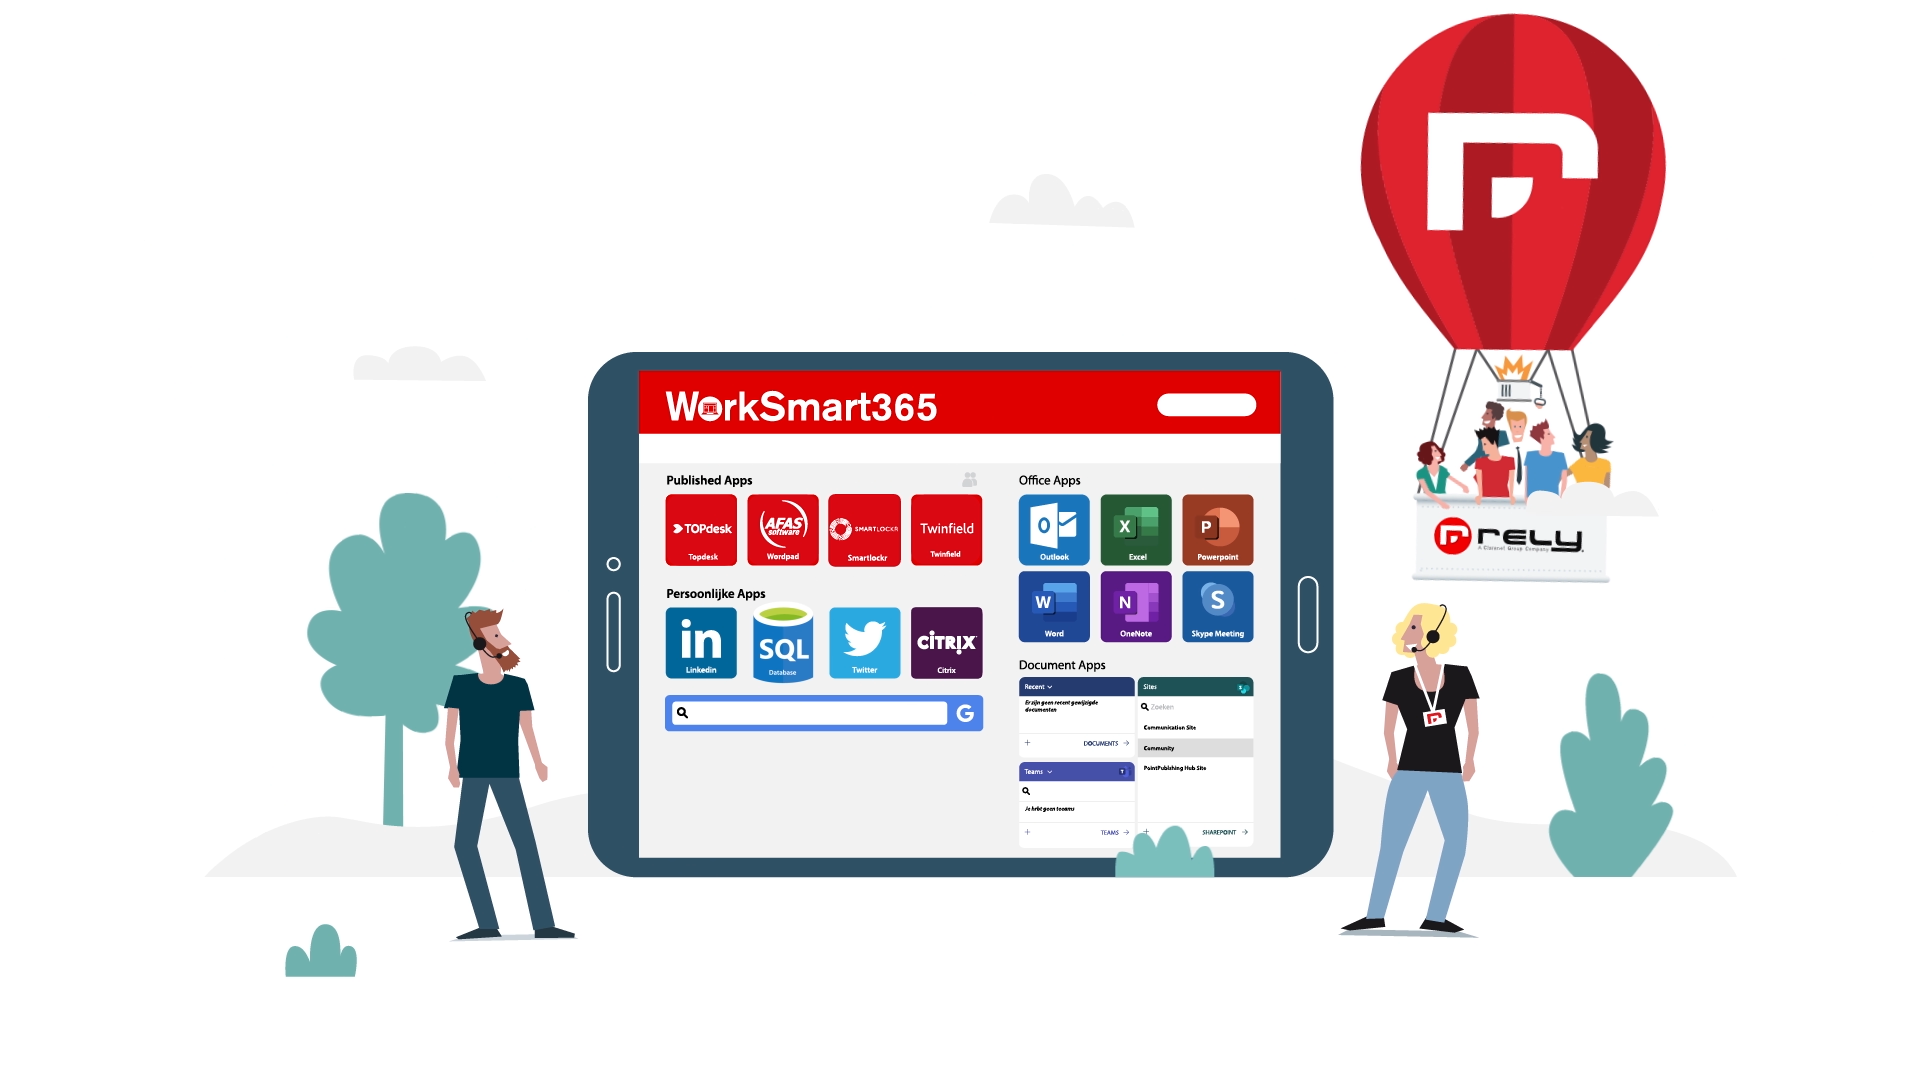 Rely WorkSmart365